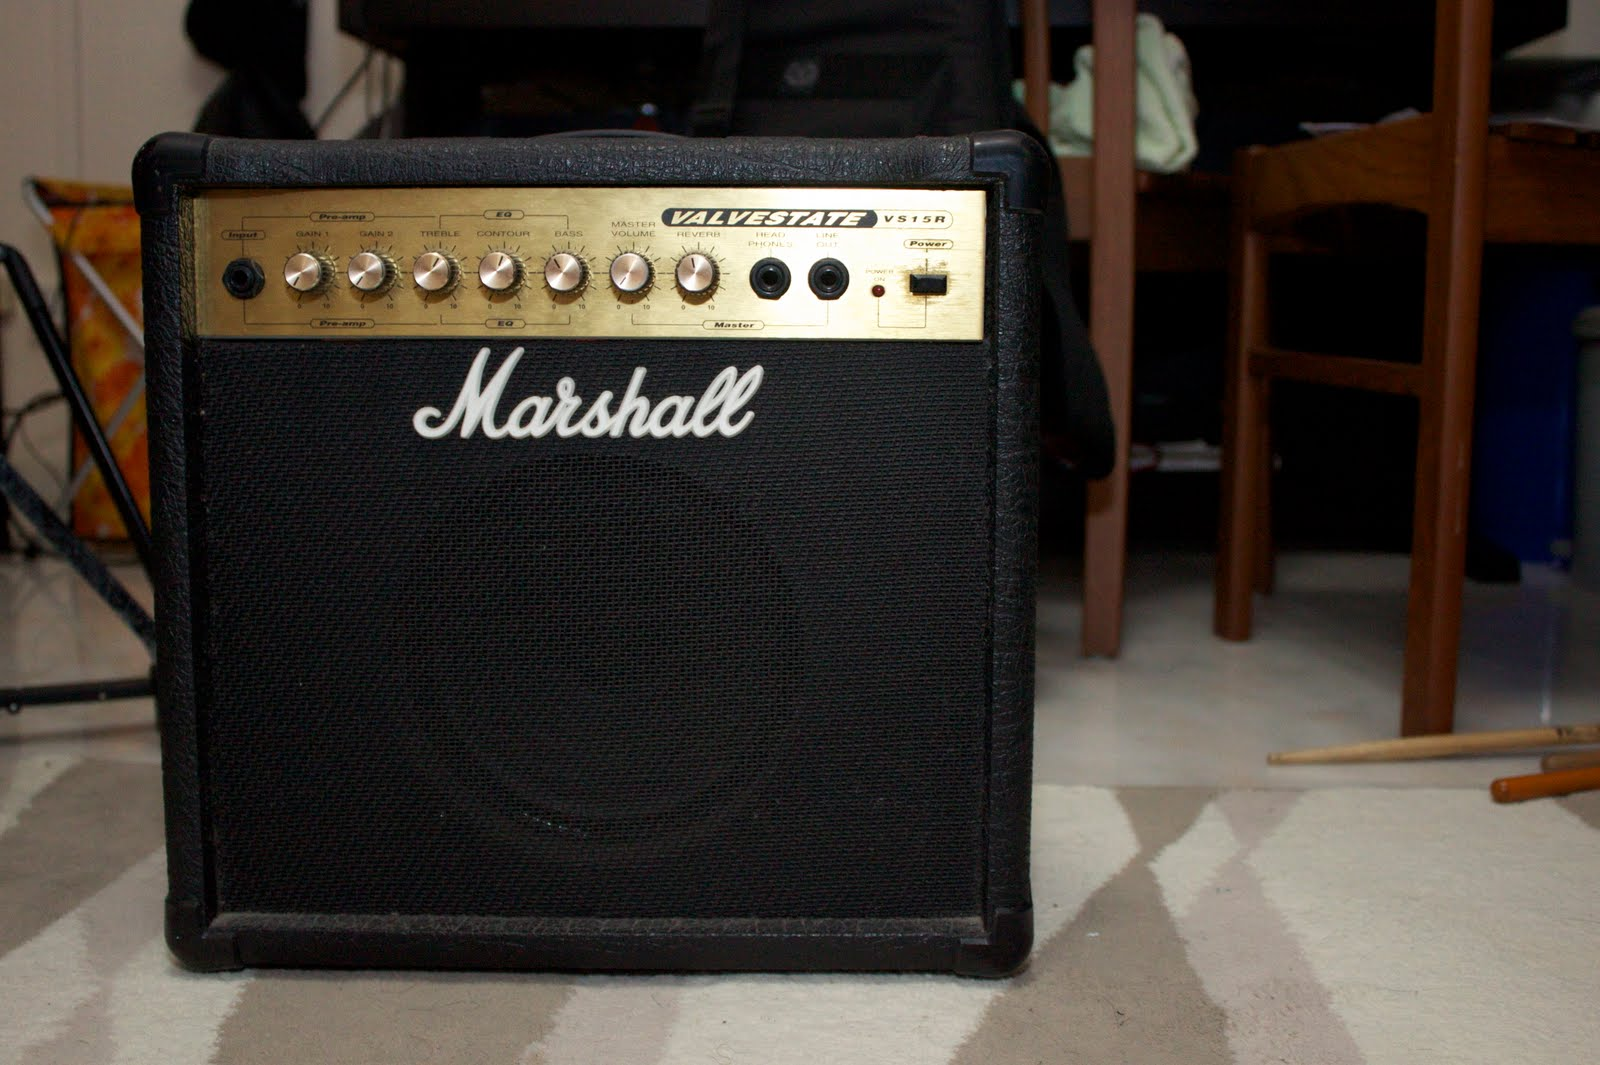 david 39 s chaotic cosmos for sale marshall bass and guitar amps 90 each. Black Bedroom Furniture Sets. Home Design Ideas